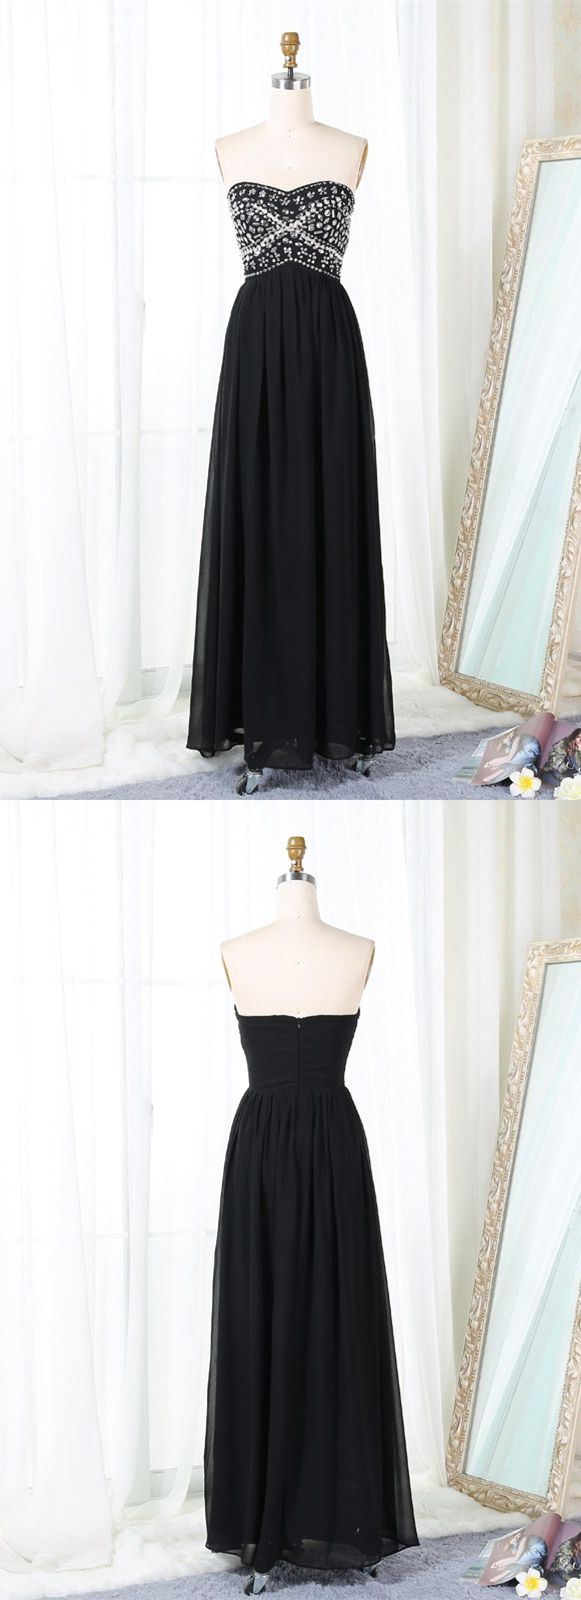 elegant strapless prom gowns, chic beaded fashion dresses under 50, cheap black evening dresses.